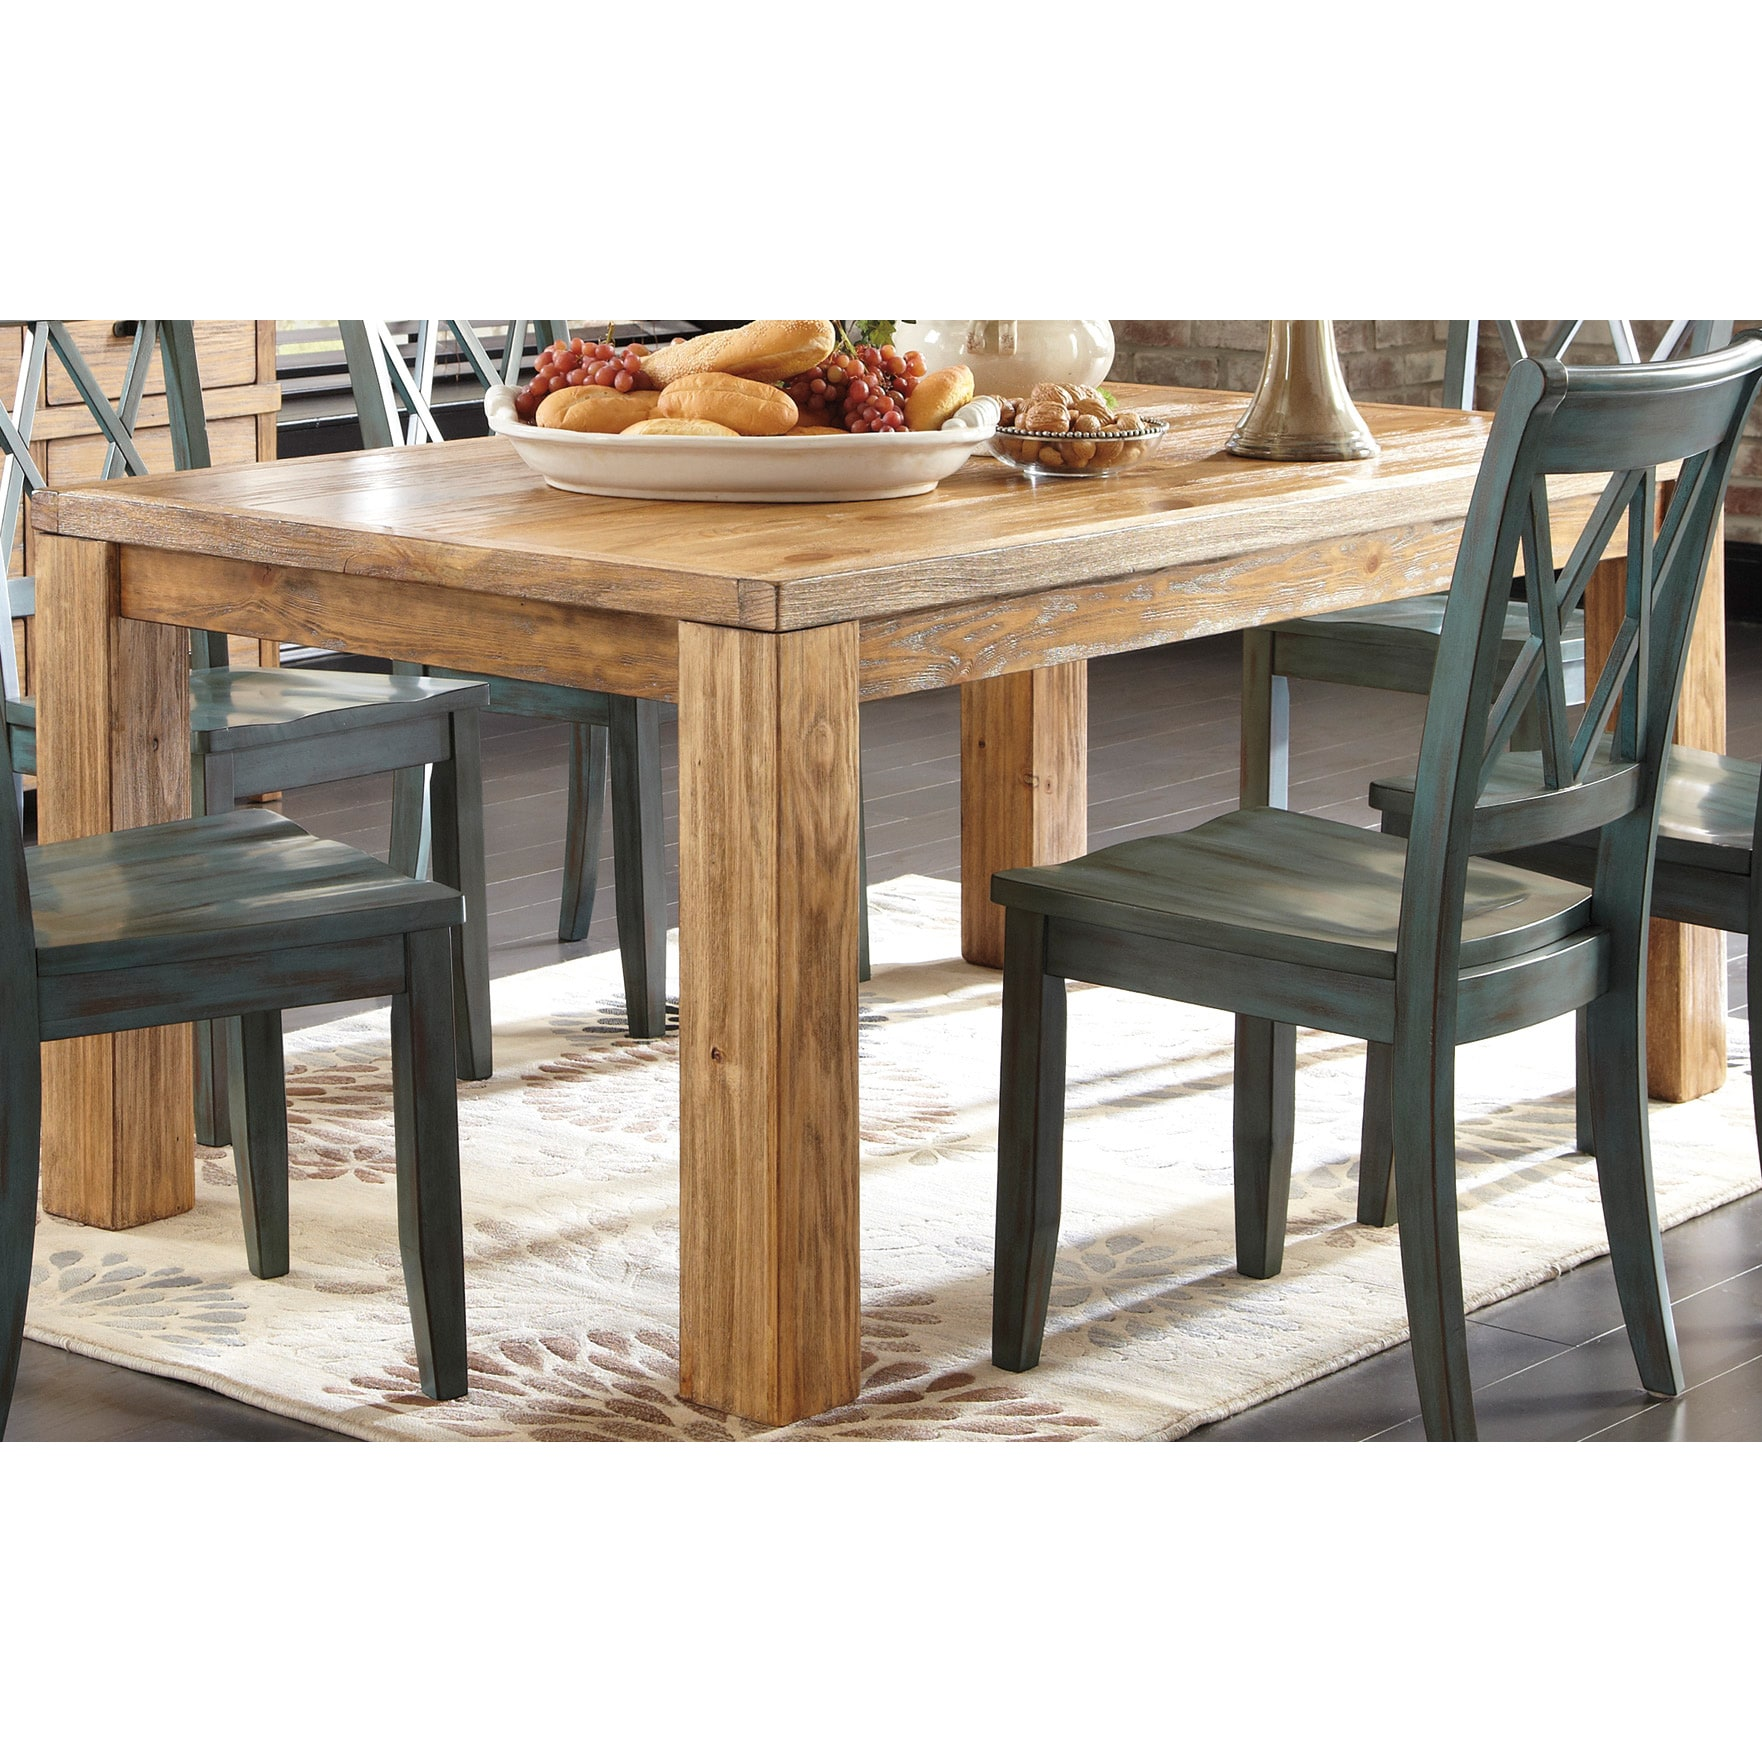 overstock dining room tables | Signature Design by Ashley 'Mestler' Rectangular Dining ...